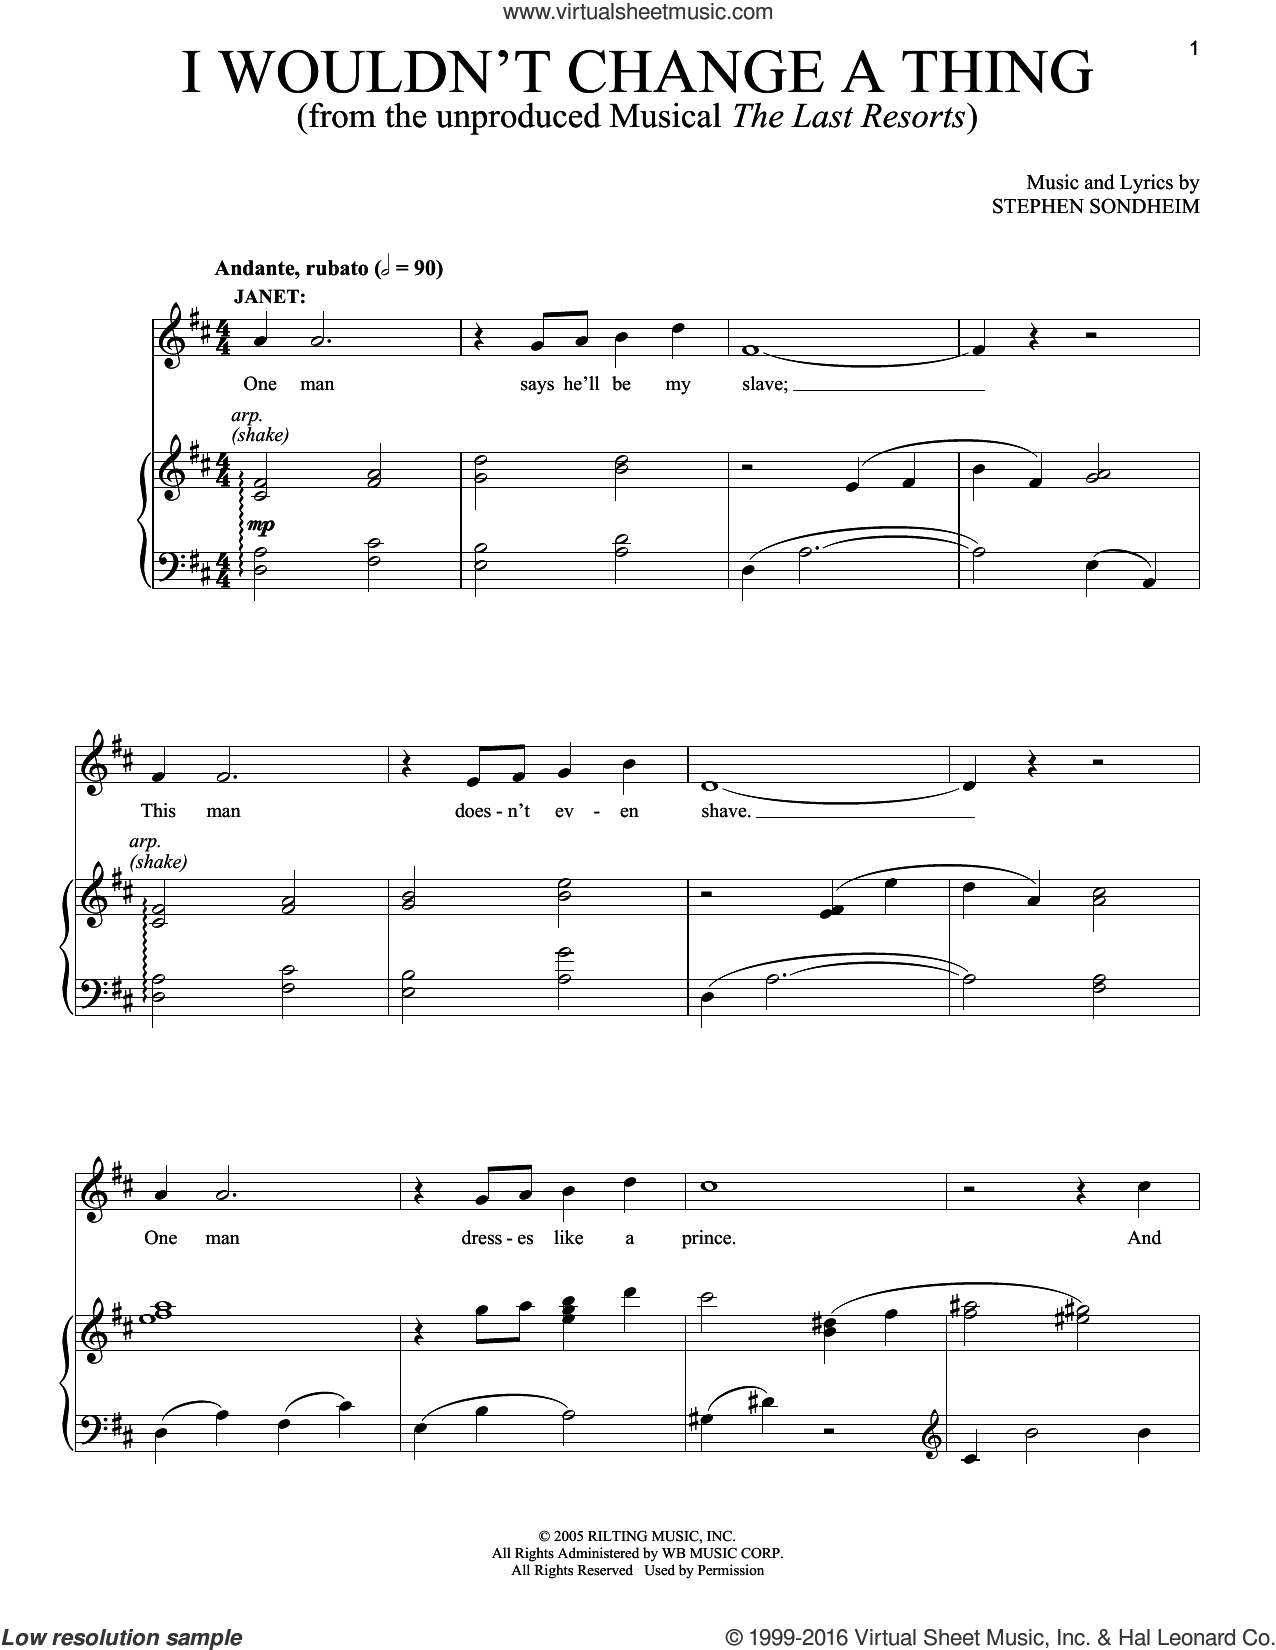 I Wouldn't Change A Thing sheet music for voice and piano by Stephen Sondheim, intermediate. Score Image Preview.